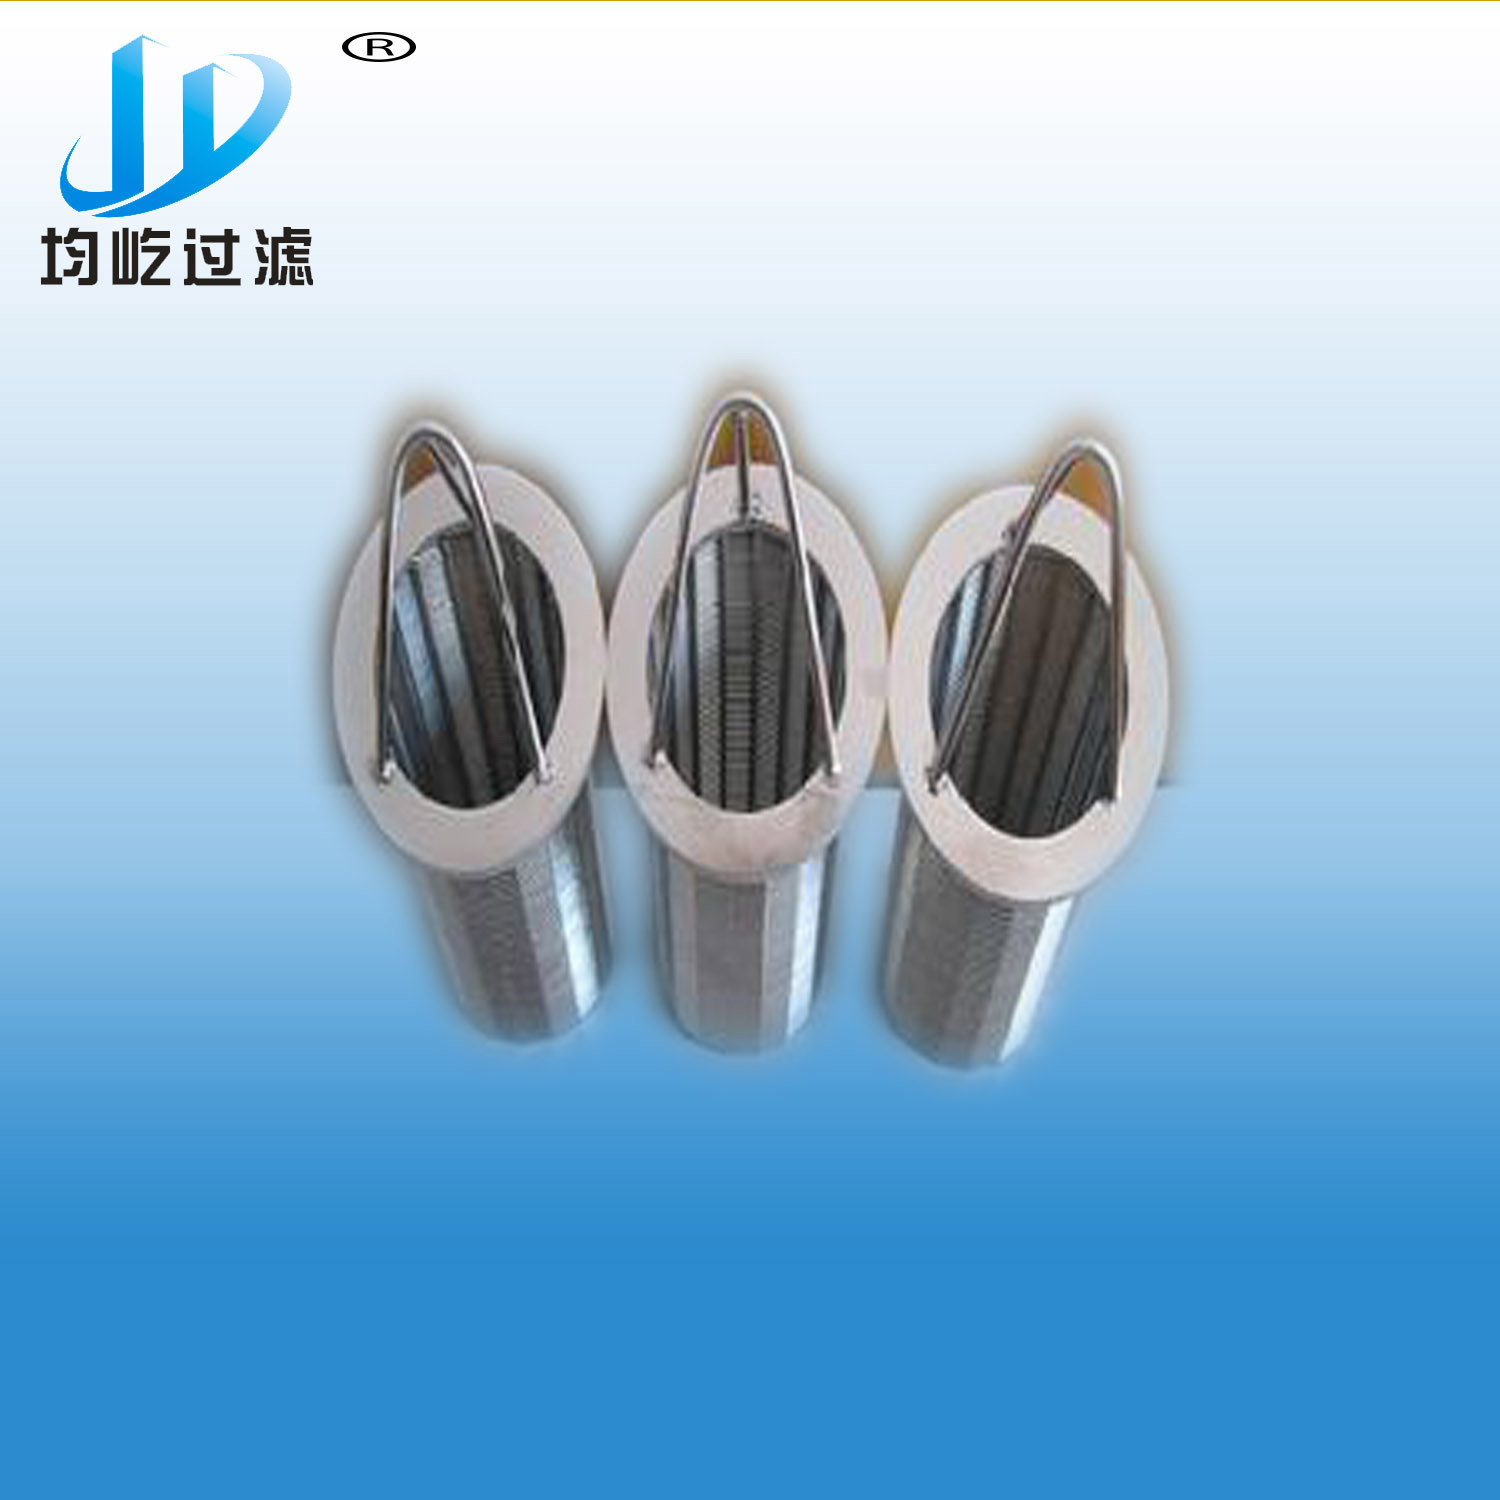 China Engine Oil Crude Basket Strainer Diesel Fuel Filter Photos Strainers And Filters